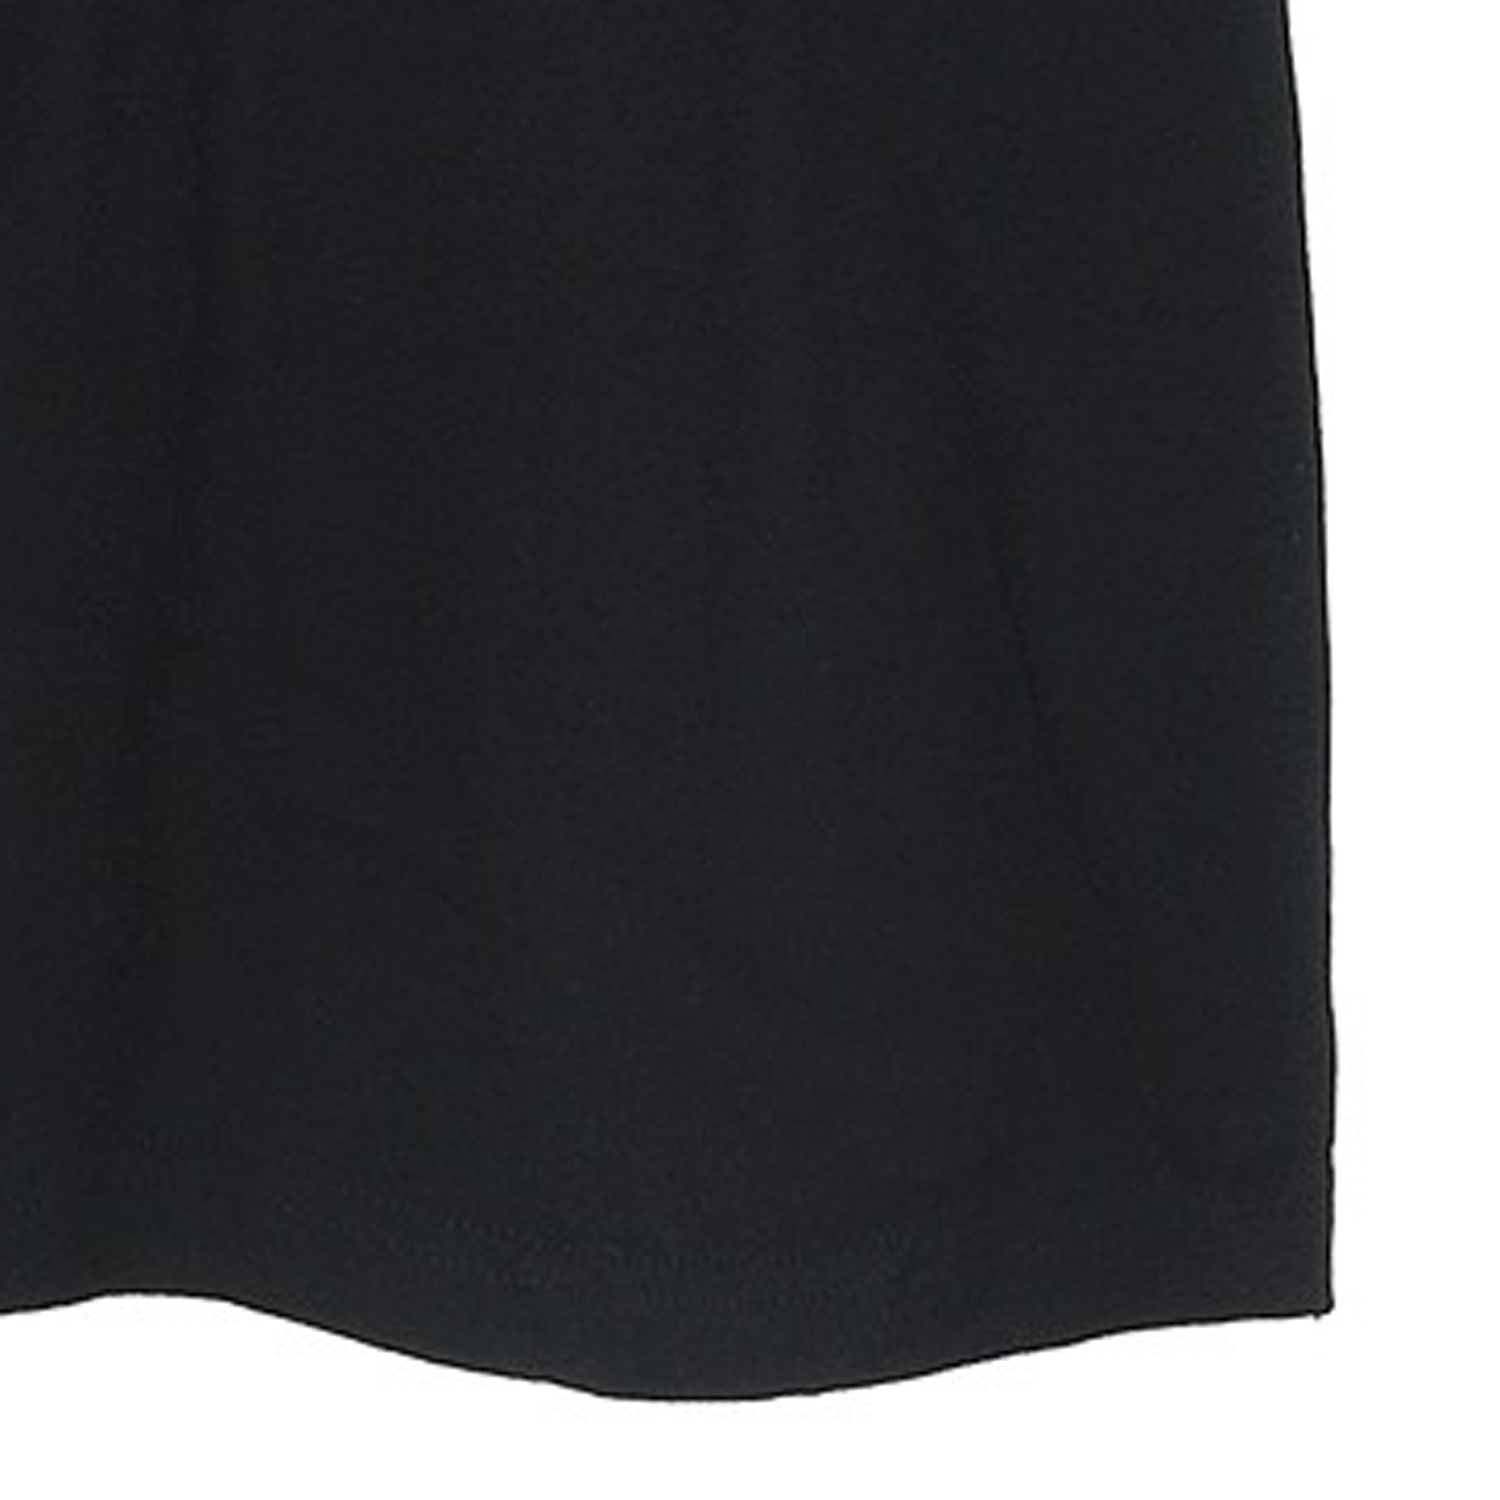 Detail Image to Black undershirts double pack from Jockey in oversize until 6XL